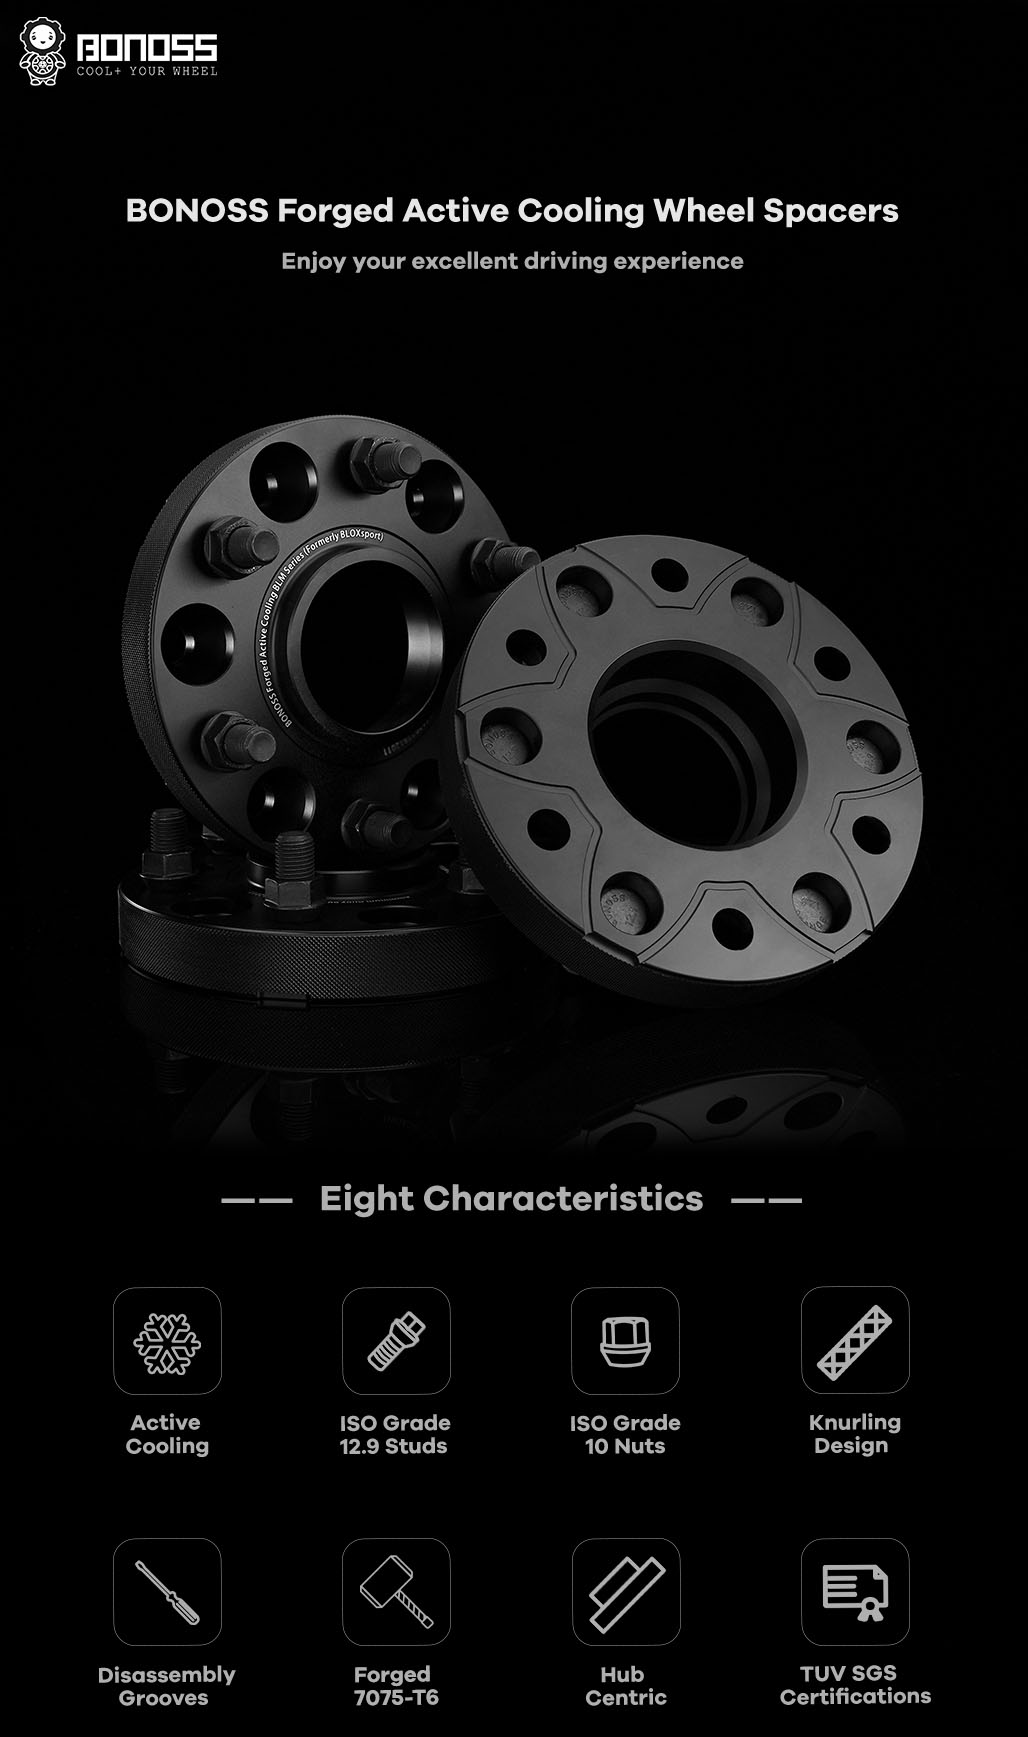 AL7075-T6 BONOSS-forged-active-cooling-wheel-spacer-6X127-78.1-M12X1.5-by-lulu-1